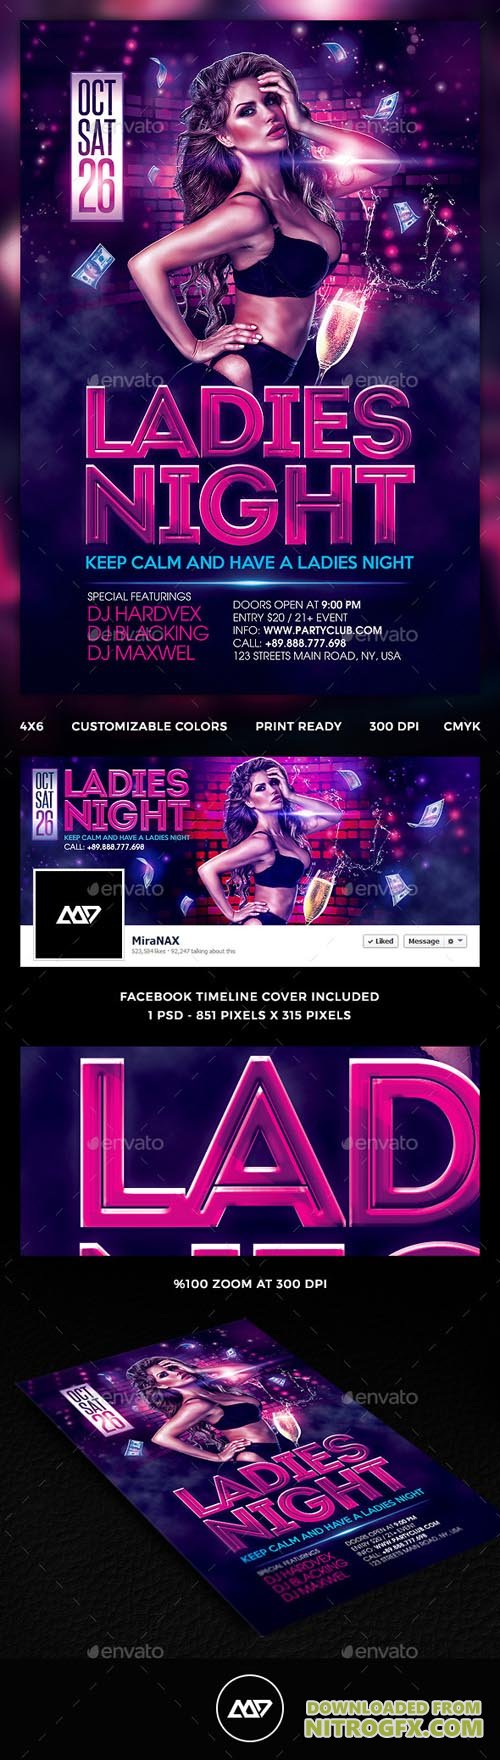 GR - Ladies Night Flyer 12922457